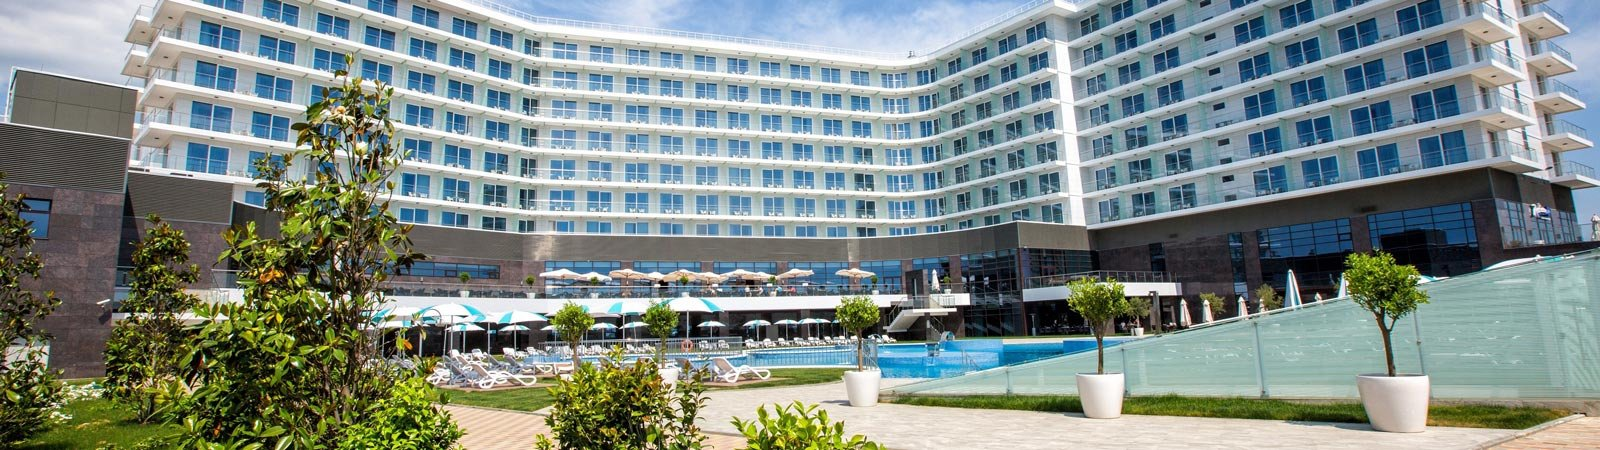 Отель «Radisson Collection Paradise Resort & Spa Sochi» Сочи